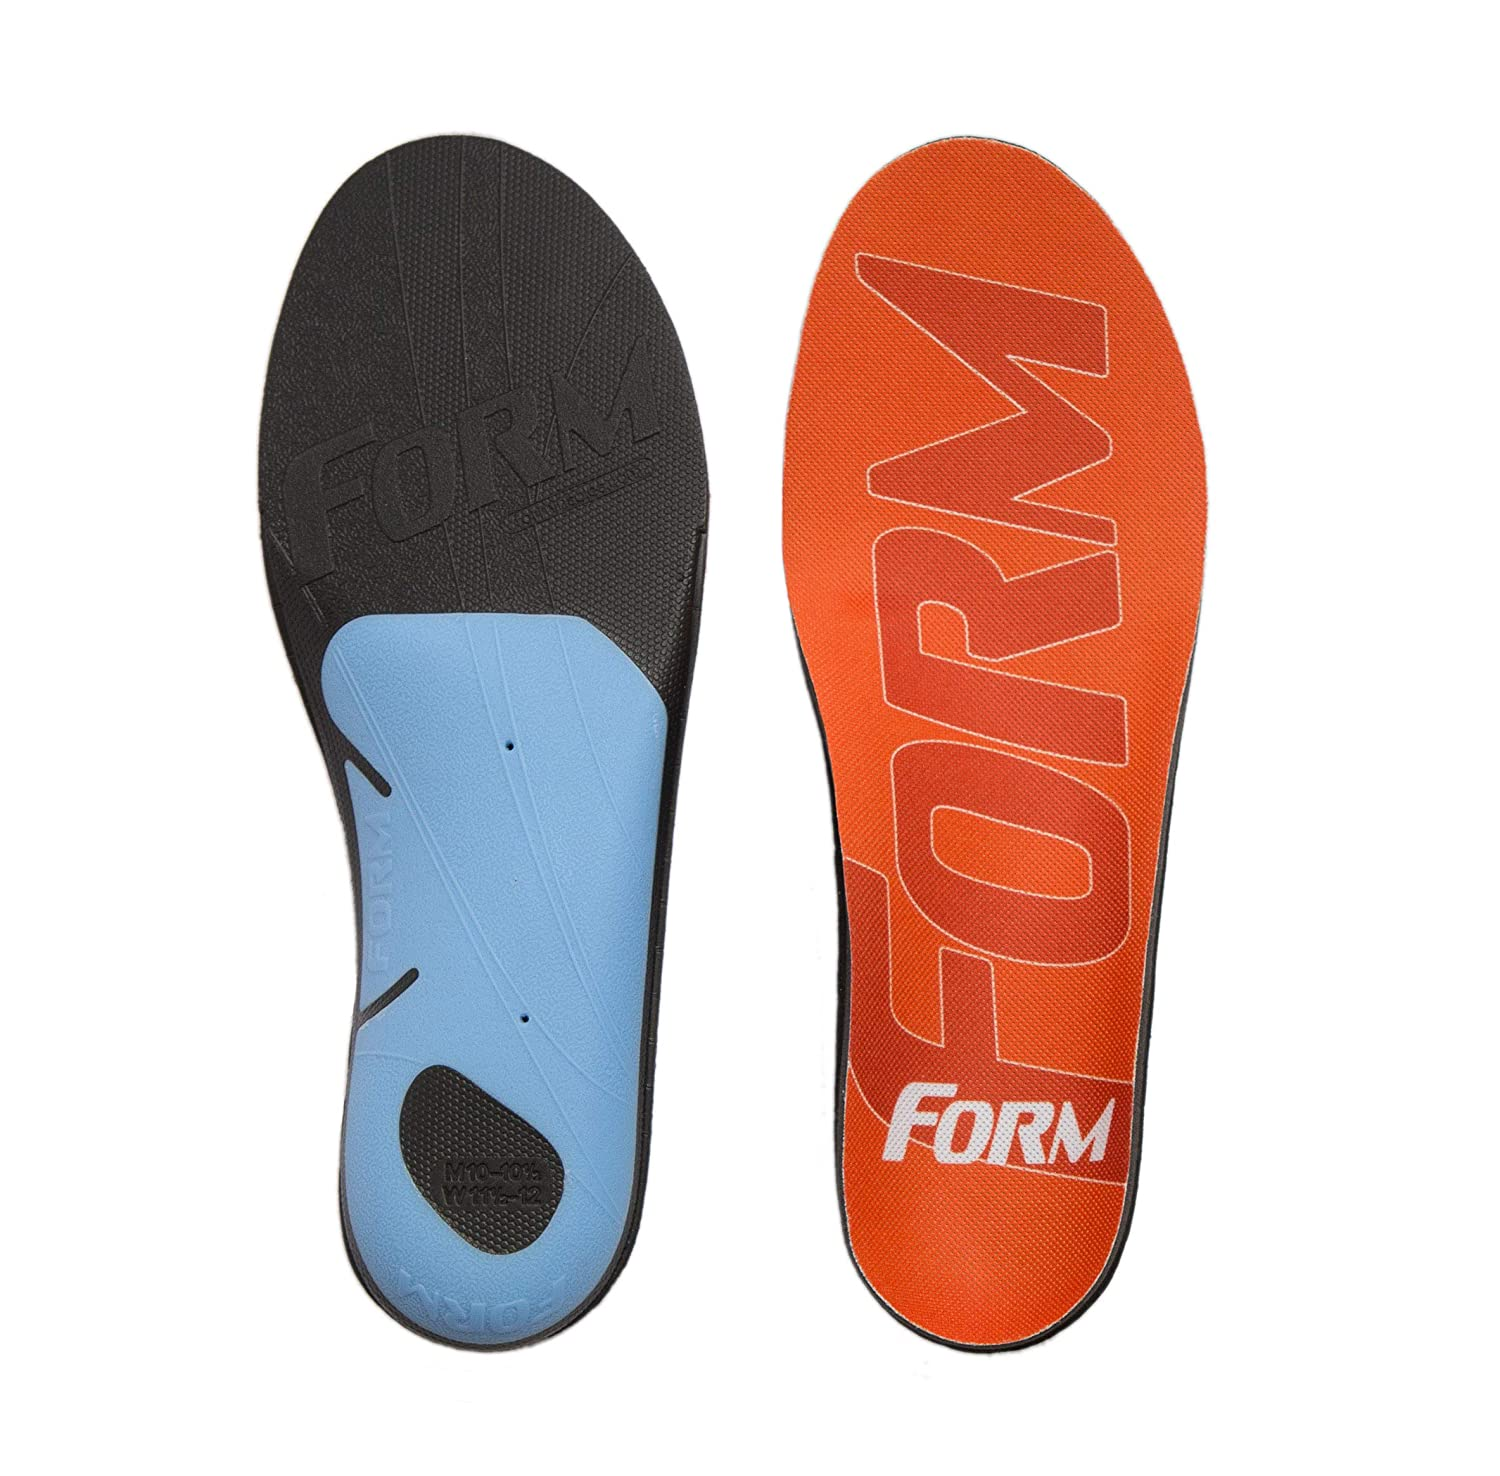 82f2f0cd75 Amazon.com: FORM Premium Insoles for Men and Women Reinforced with  EnduraHeel: Shoes